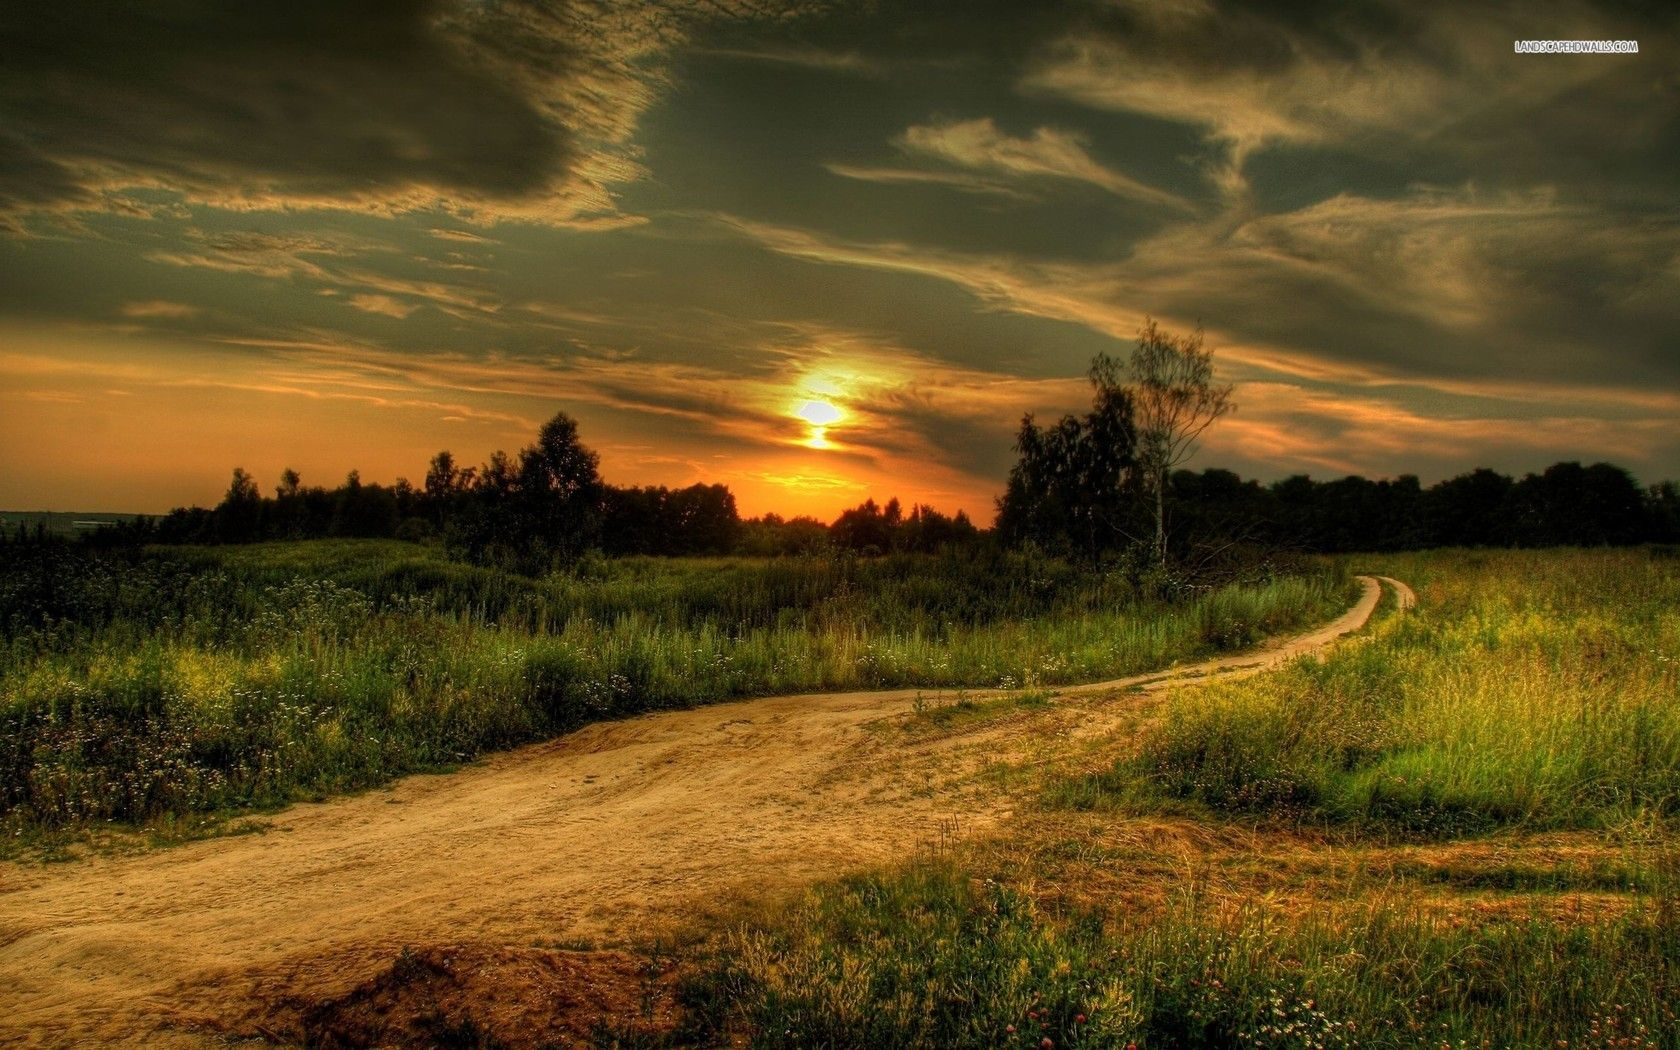 Country Sunset Country Road at Sunset wallpaper 612